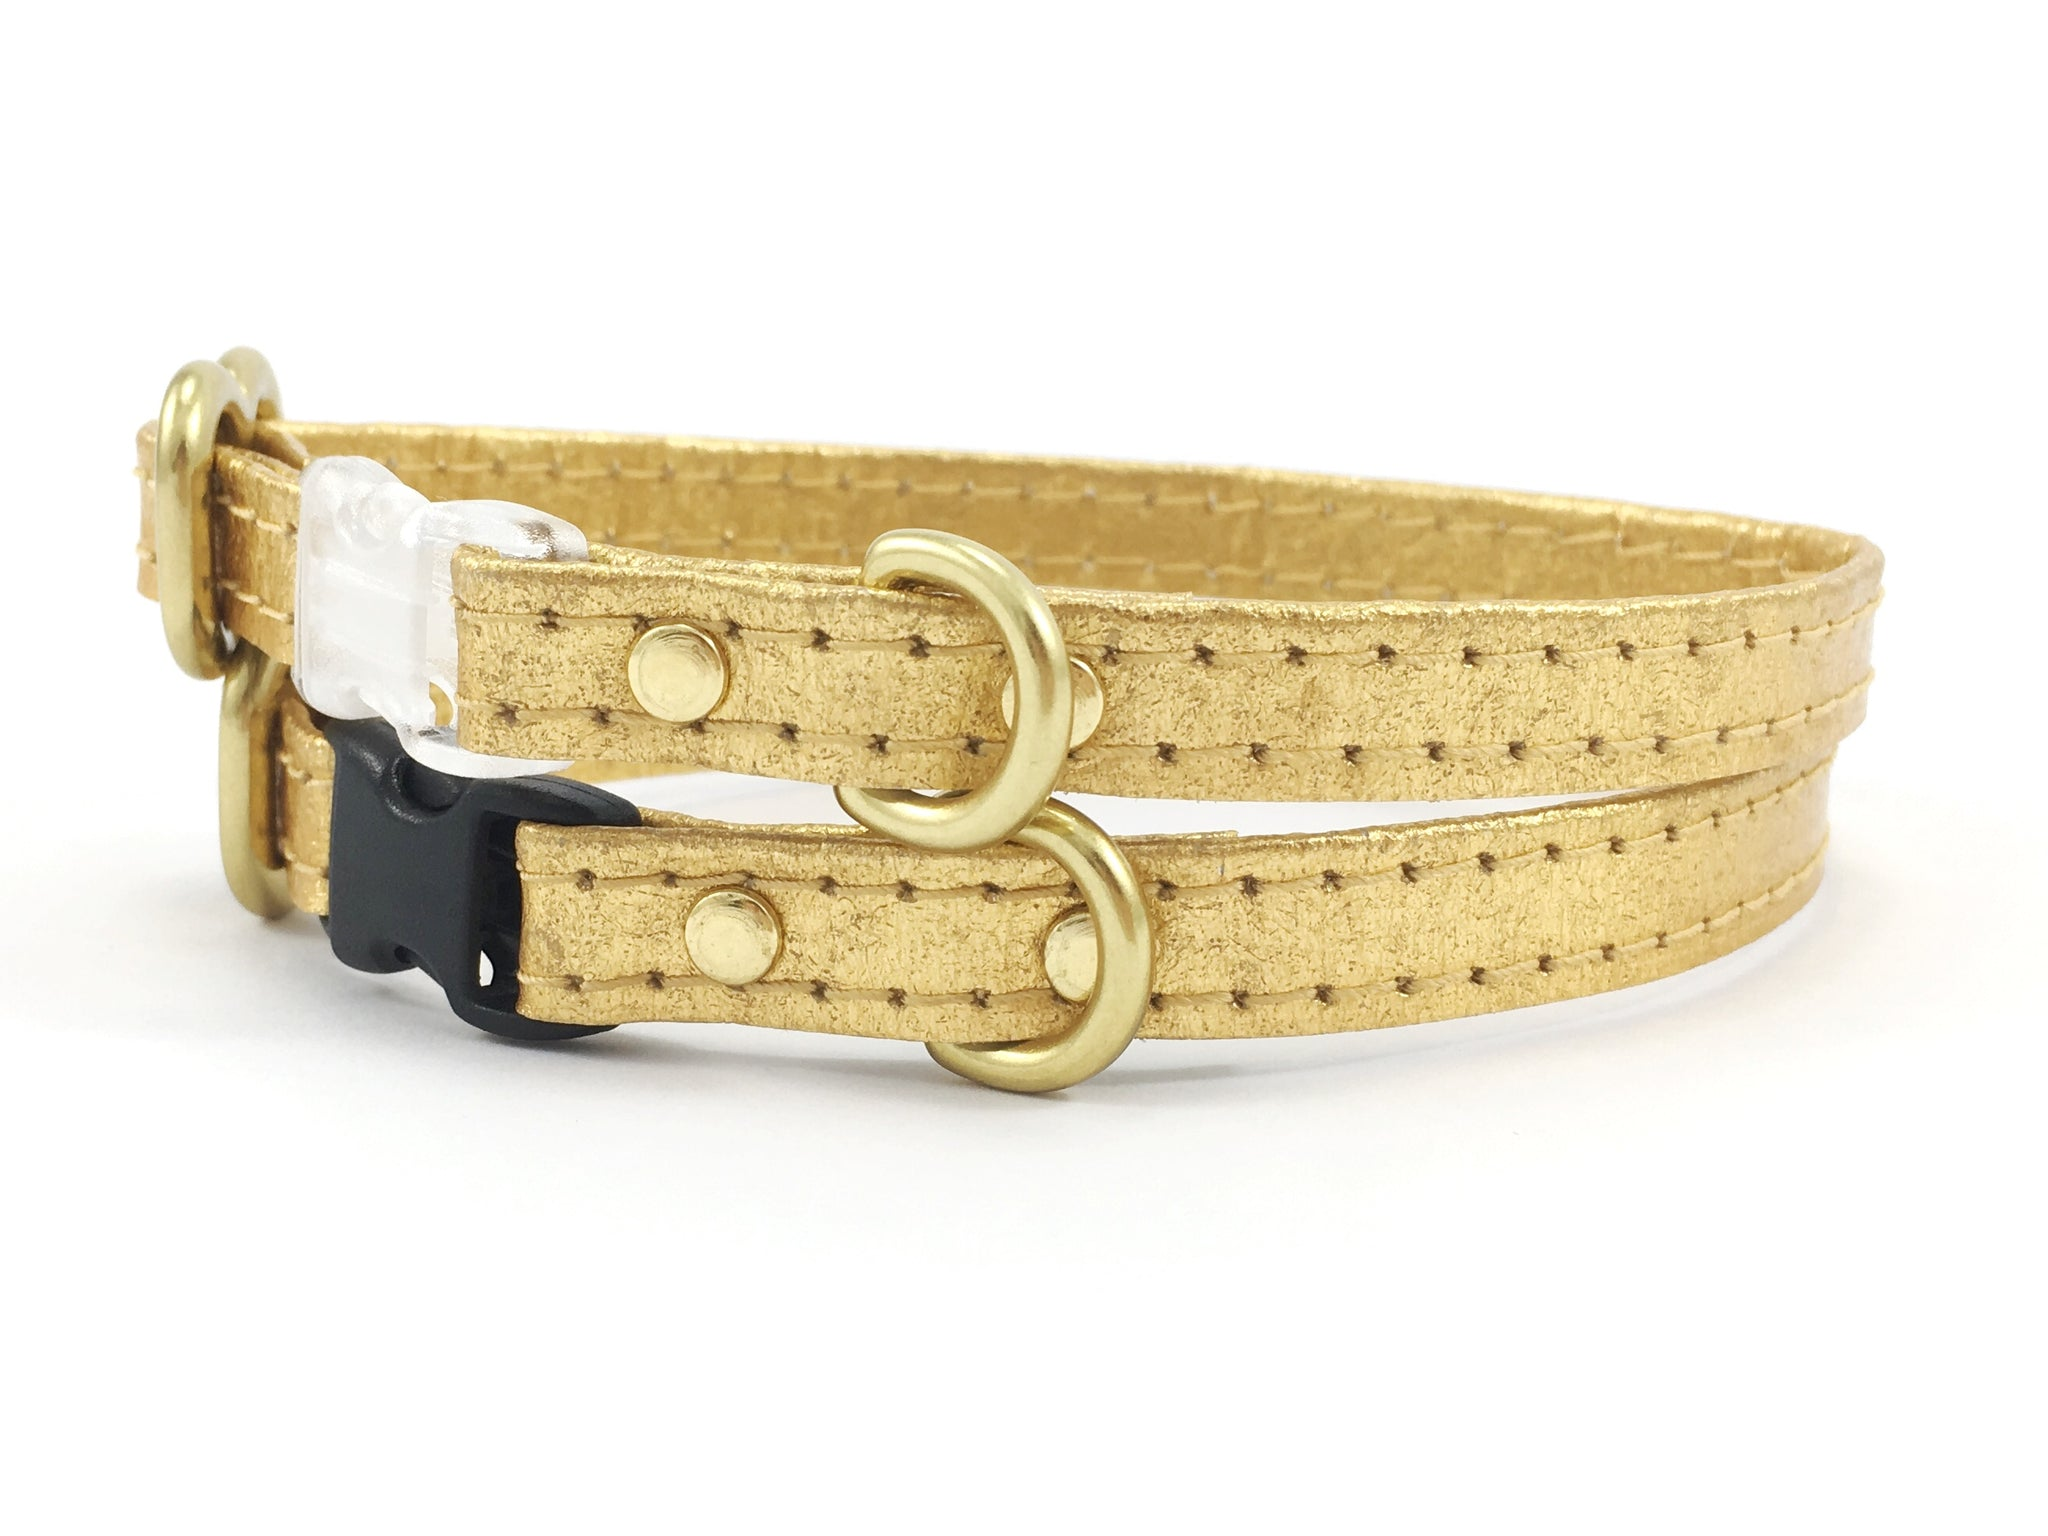 Gold Miniature Dog Collar in Piñatex Vegan Leather